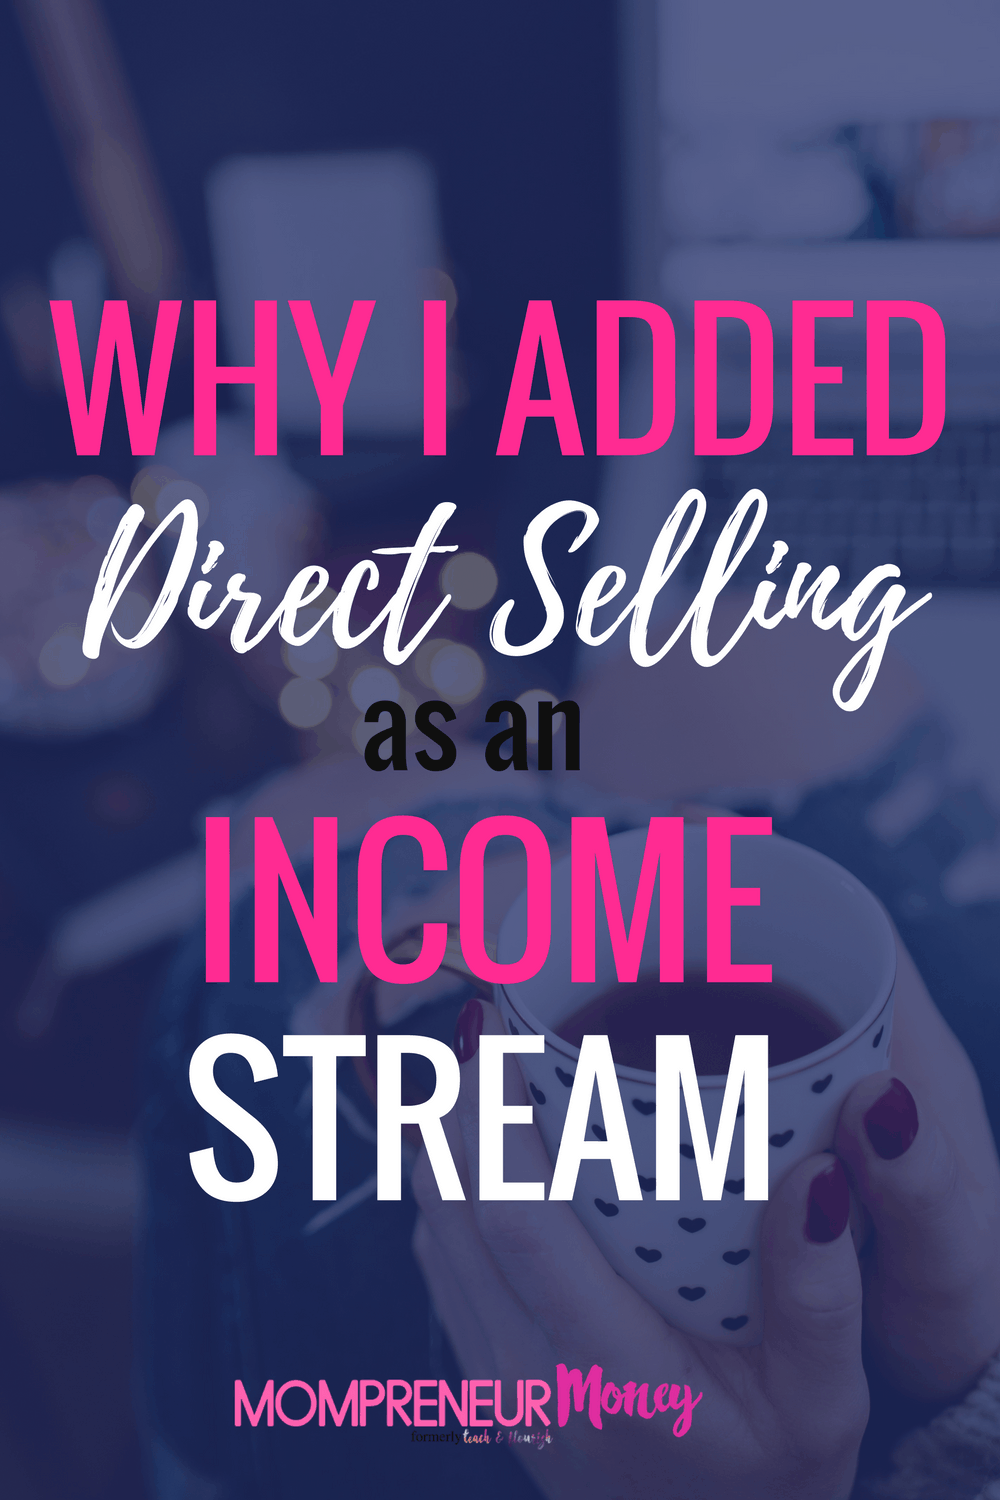 Direct Selling as an Income Stream for Bloggers